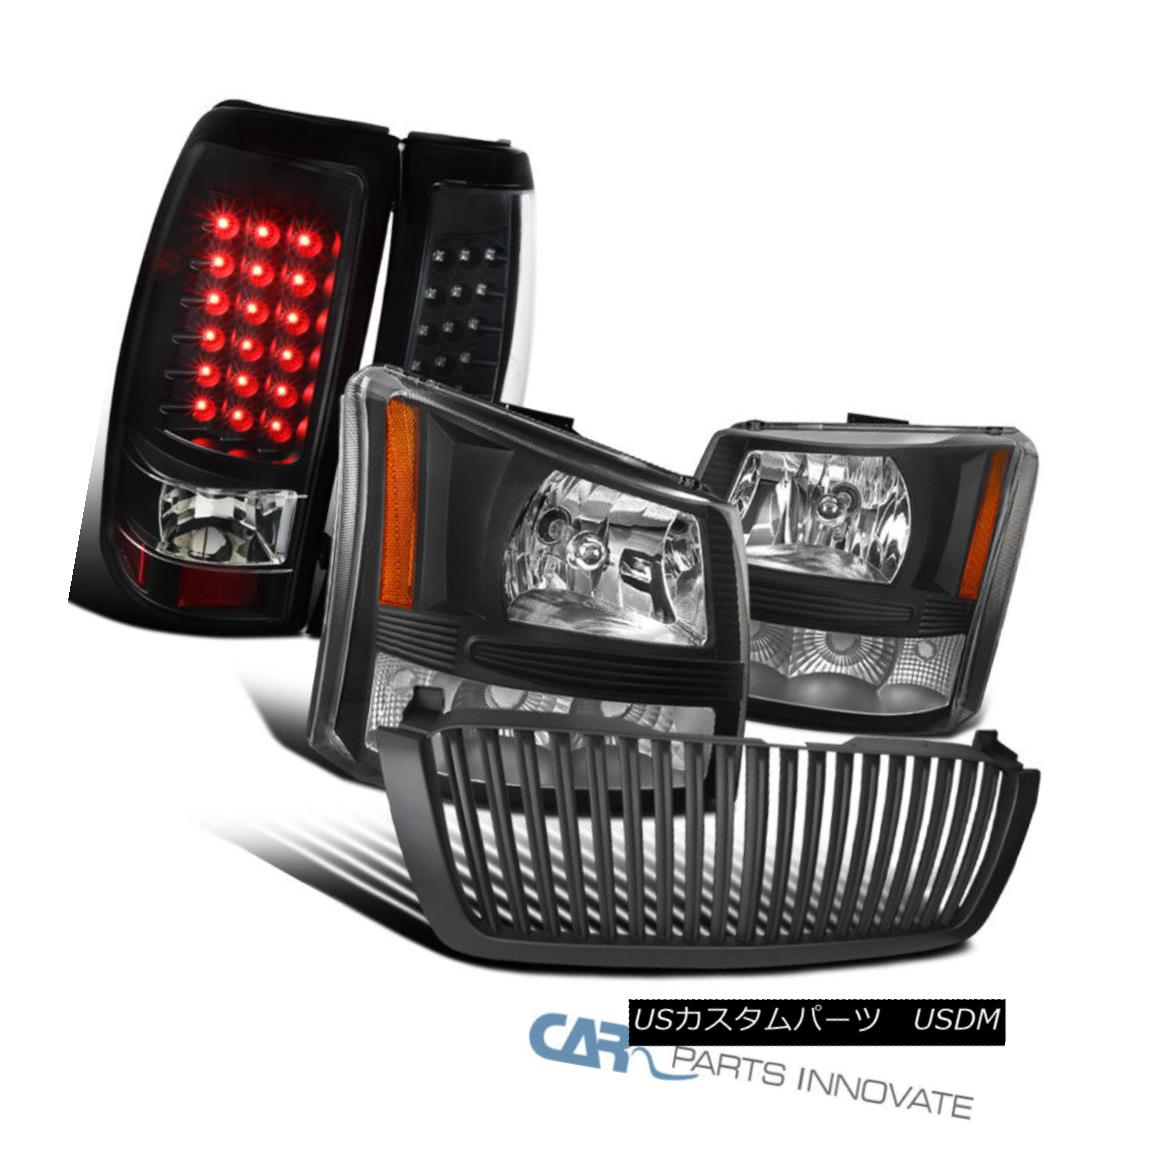 グリル Chevy 03-05 Silverado 2in1 Black Head Bumper Lights+Hood Grille+LED Tail Lamps Chevy 03-05 Silverado 2in1ブラックヘッドバンパーライト+フードグリル+ LEDテールランプ